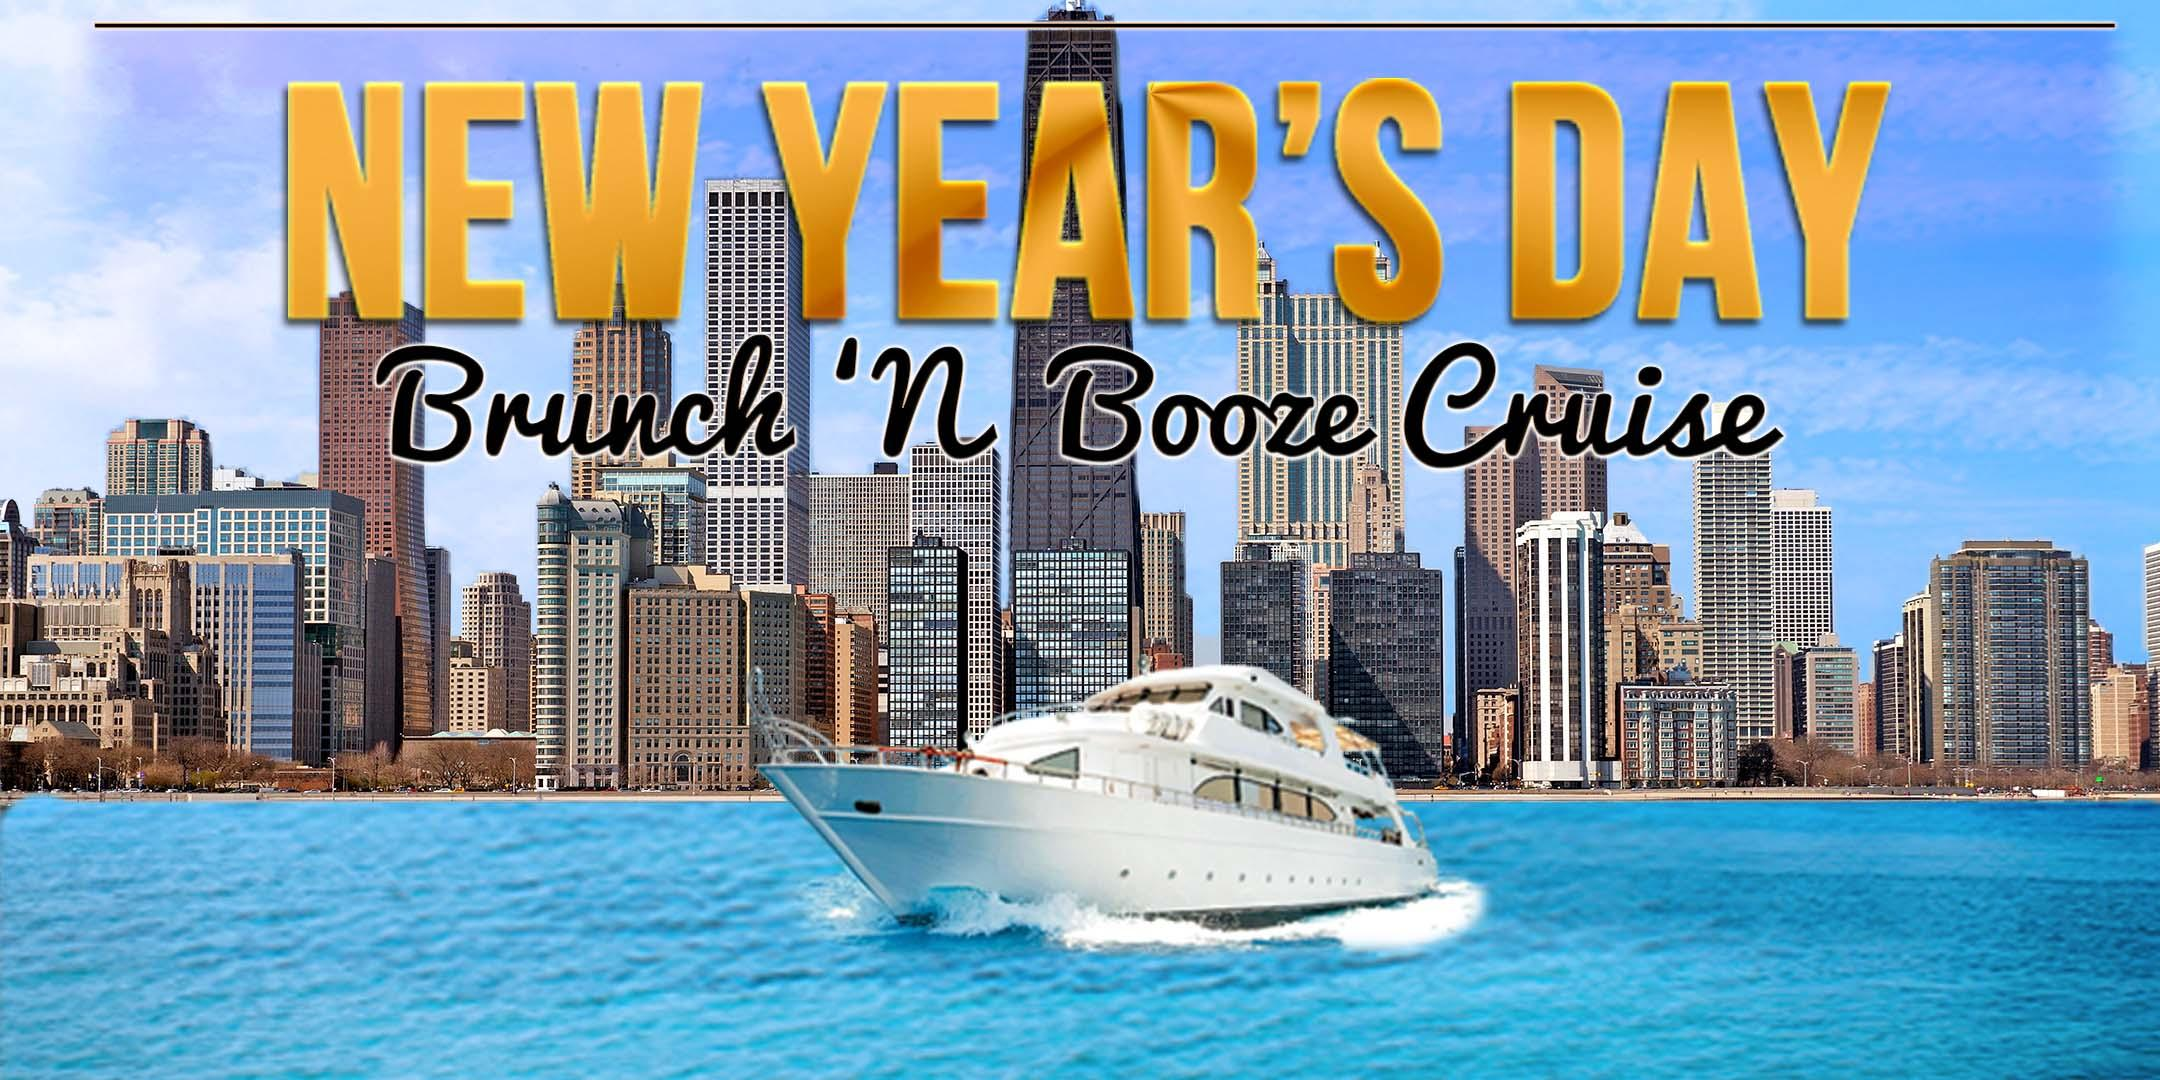 New Year's Day Brunch 'N Booze Cruise!